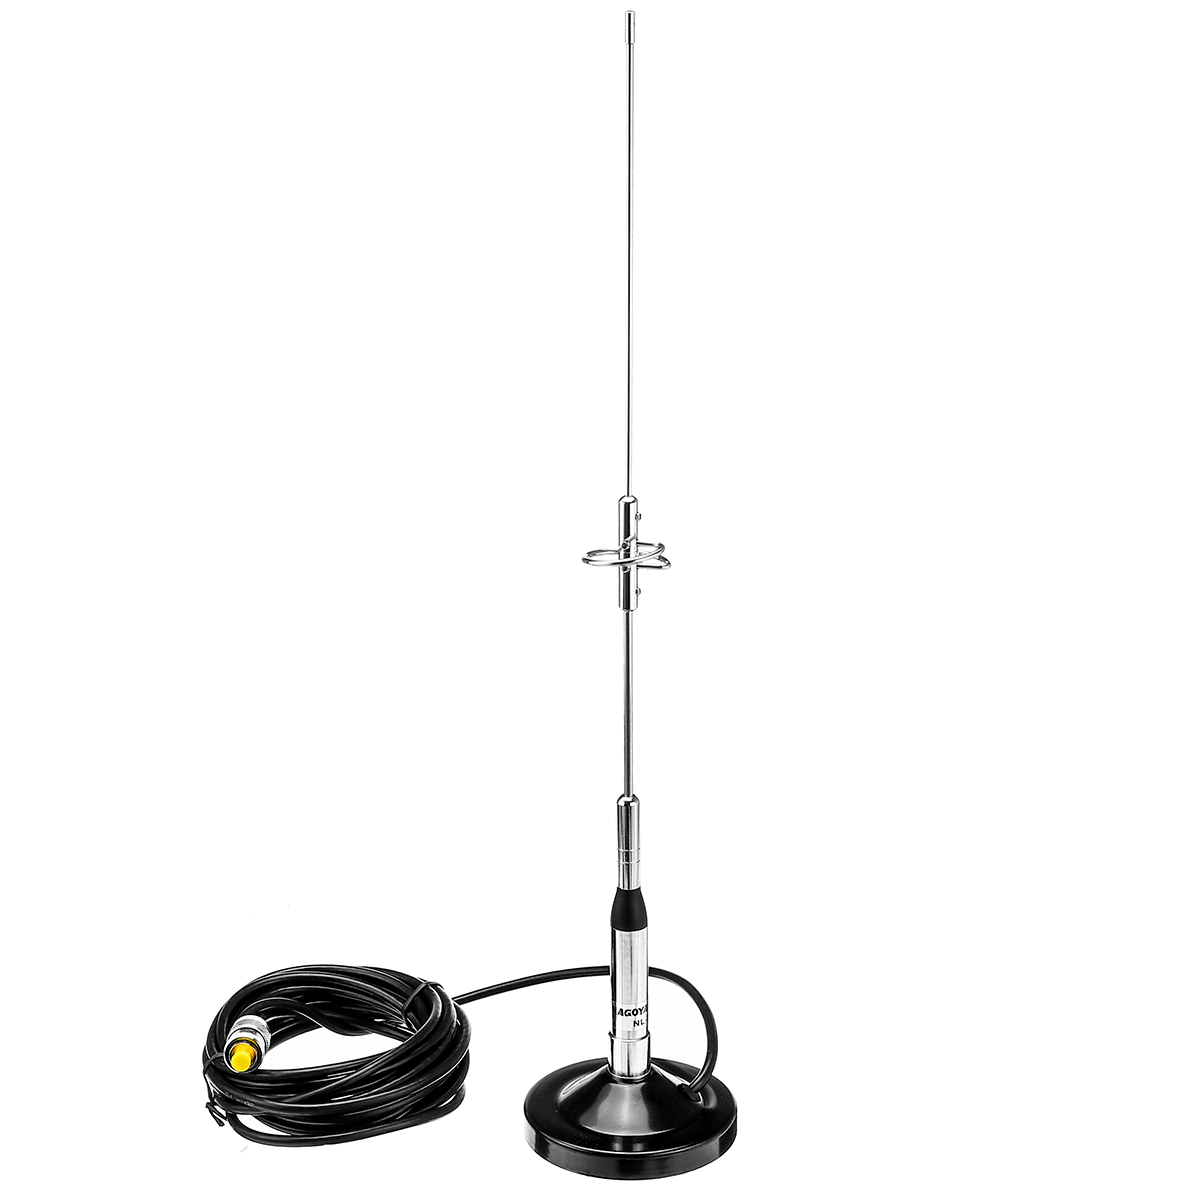 3 0 Db Dual Band Car Radio Mobile Station Antenna Nl 770s